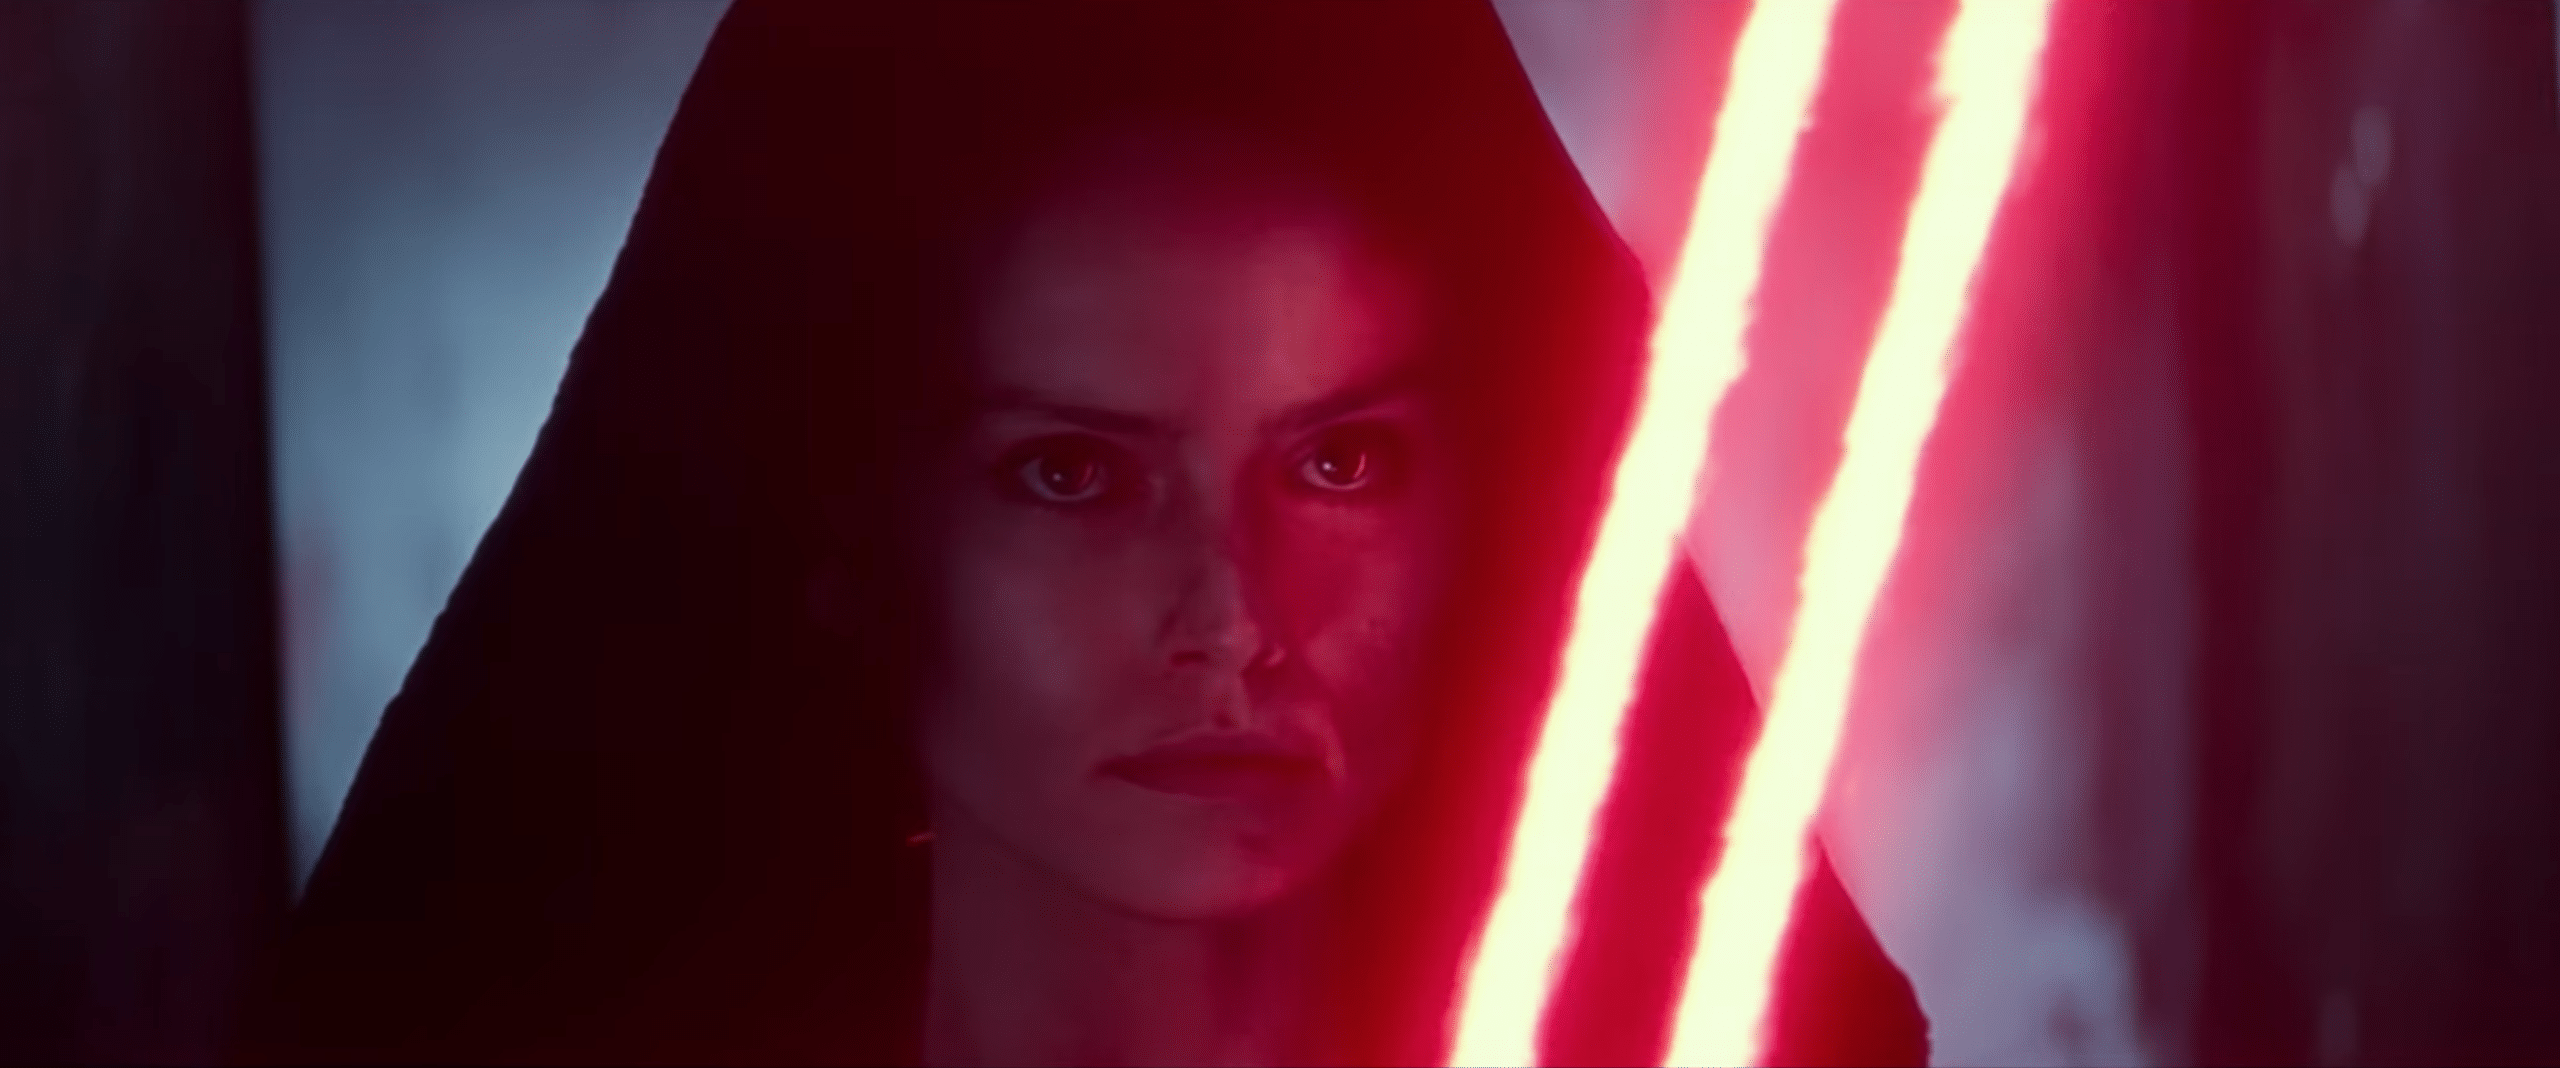 Star Wars: The Rise of Skywalker dark rey